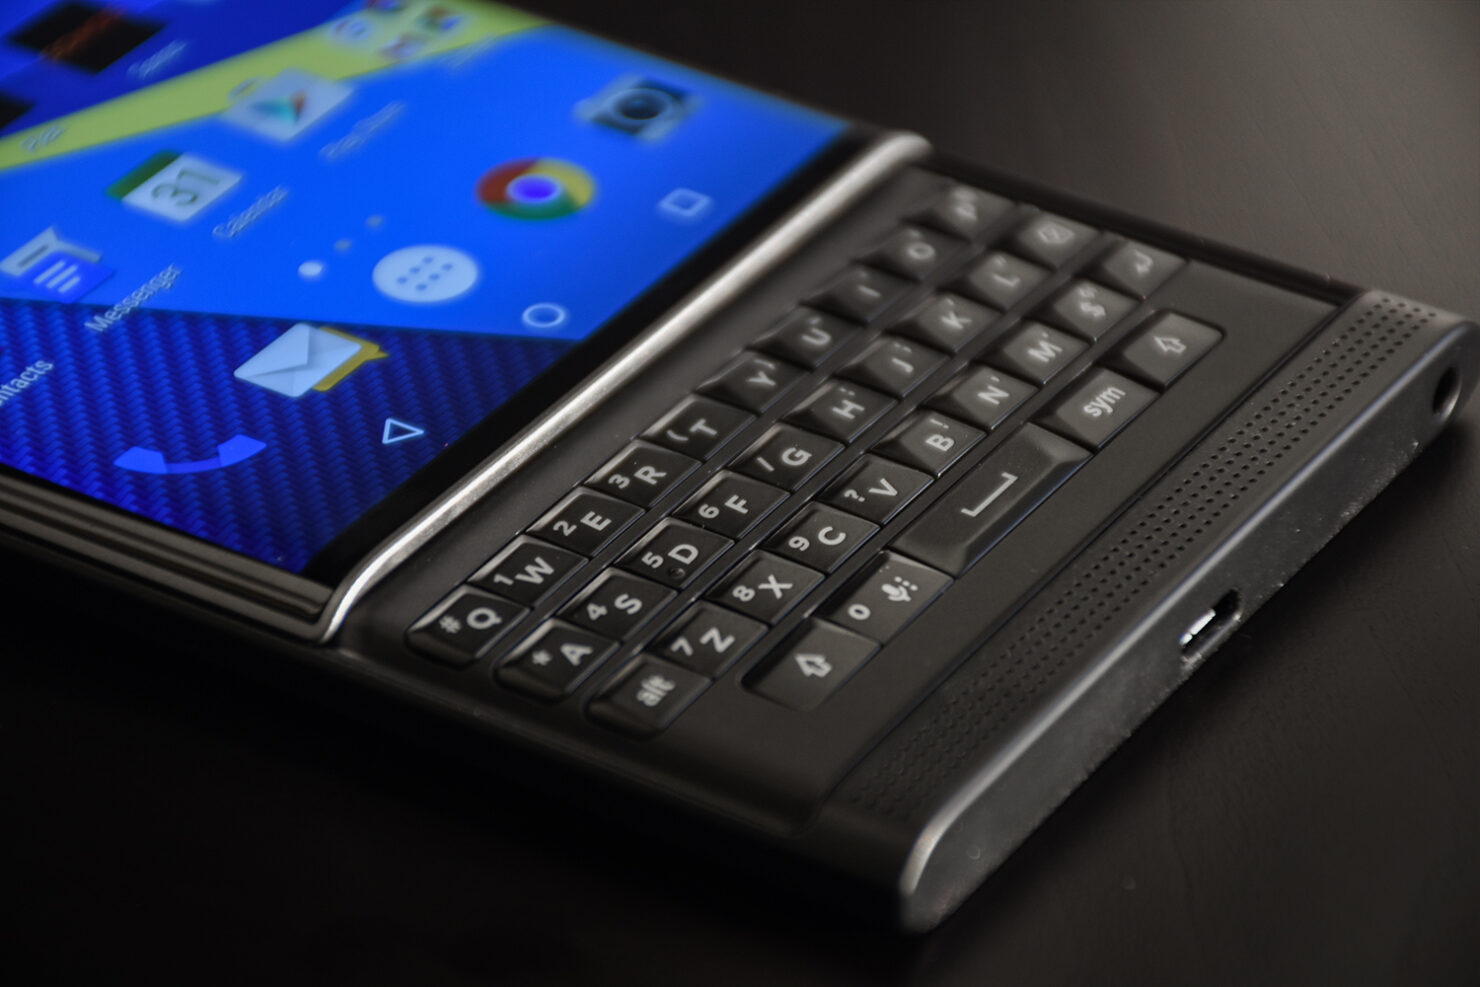 New BlackBerry Android Smartphone Could Announce Next Week – Will Its Specs And Features Outperform The PRIV?